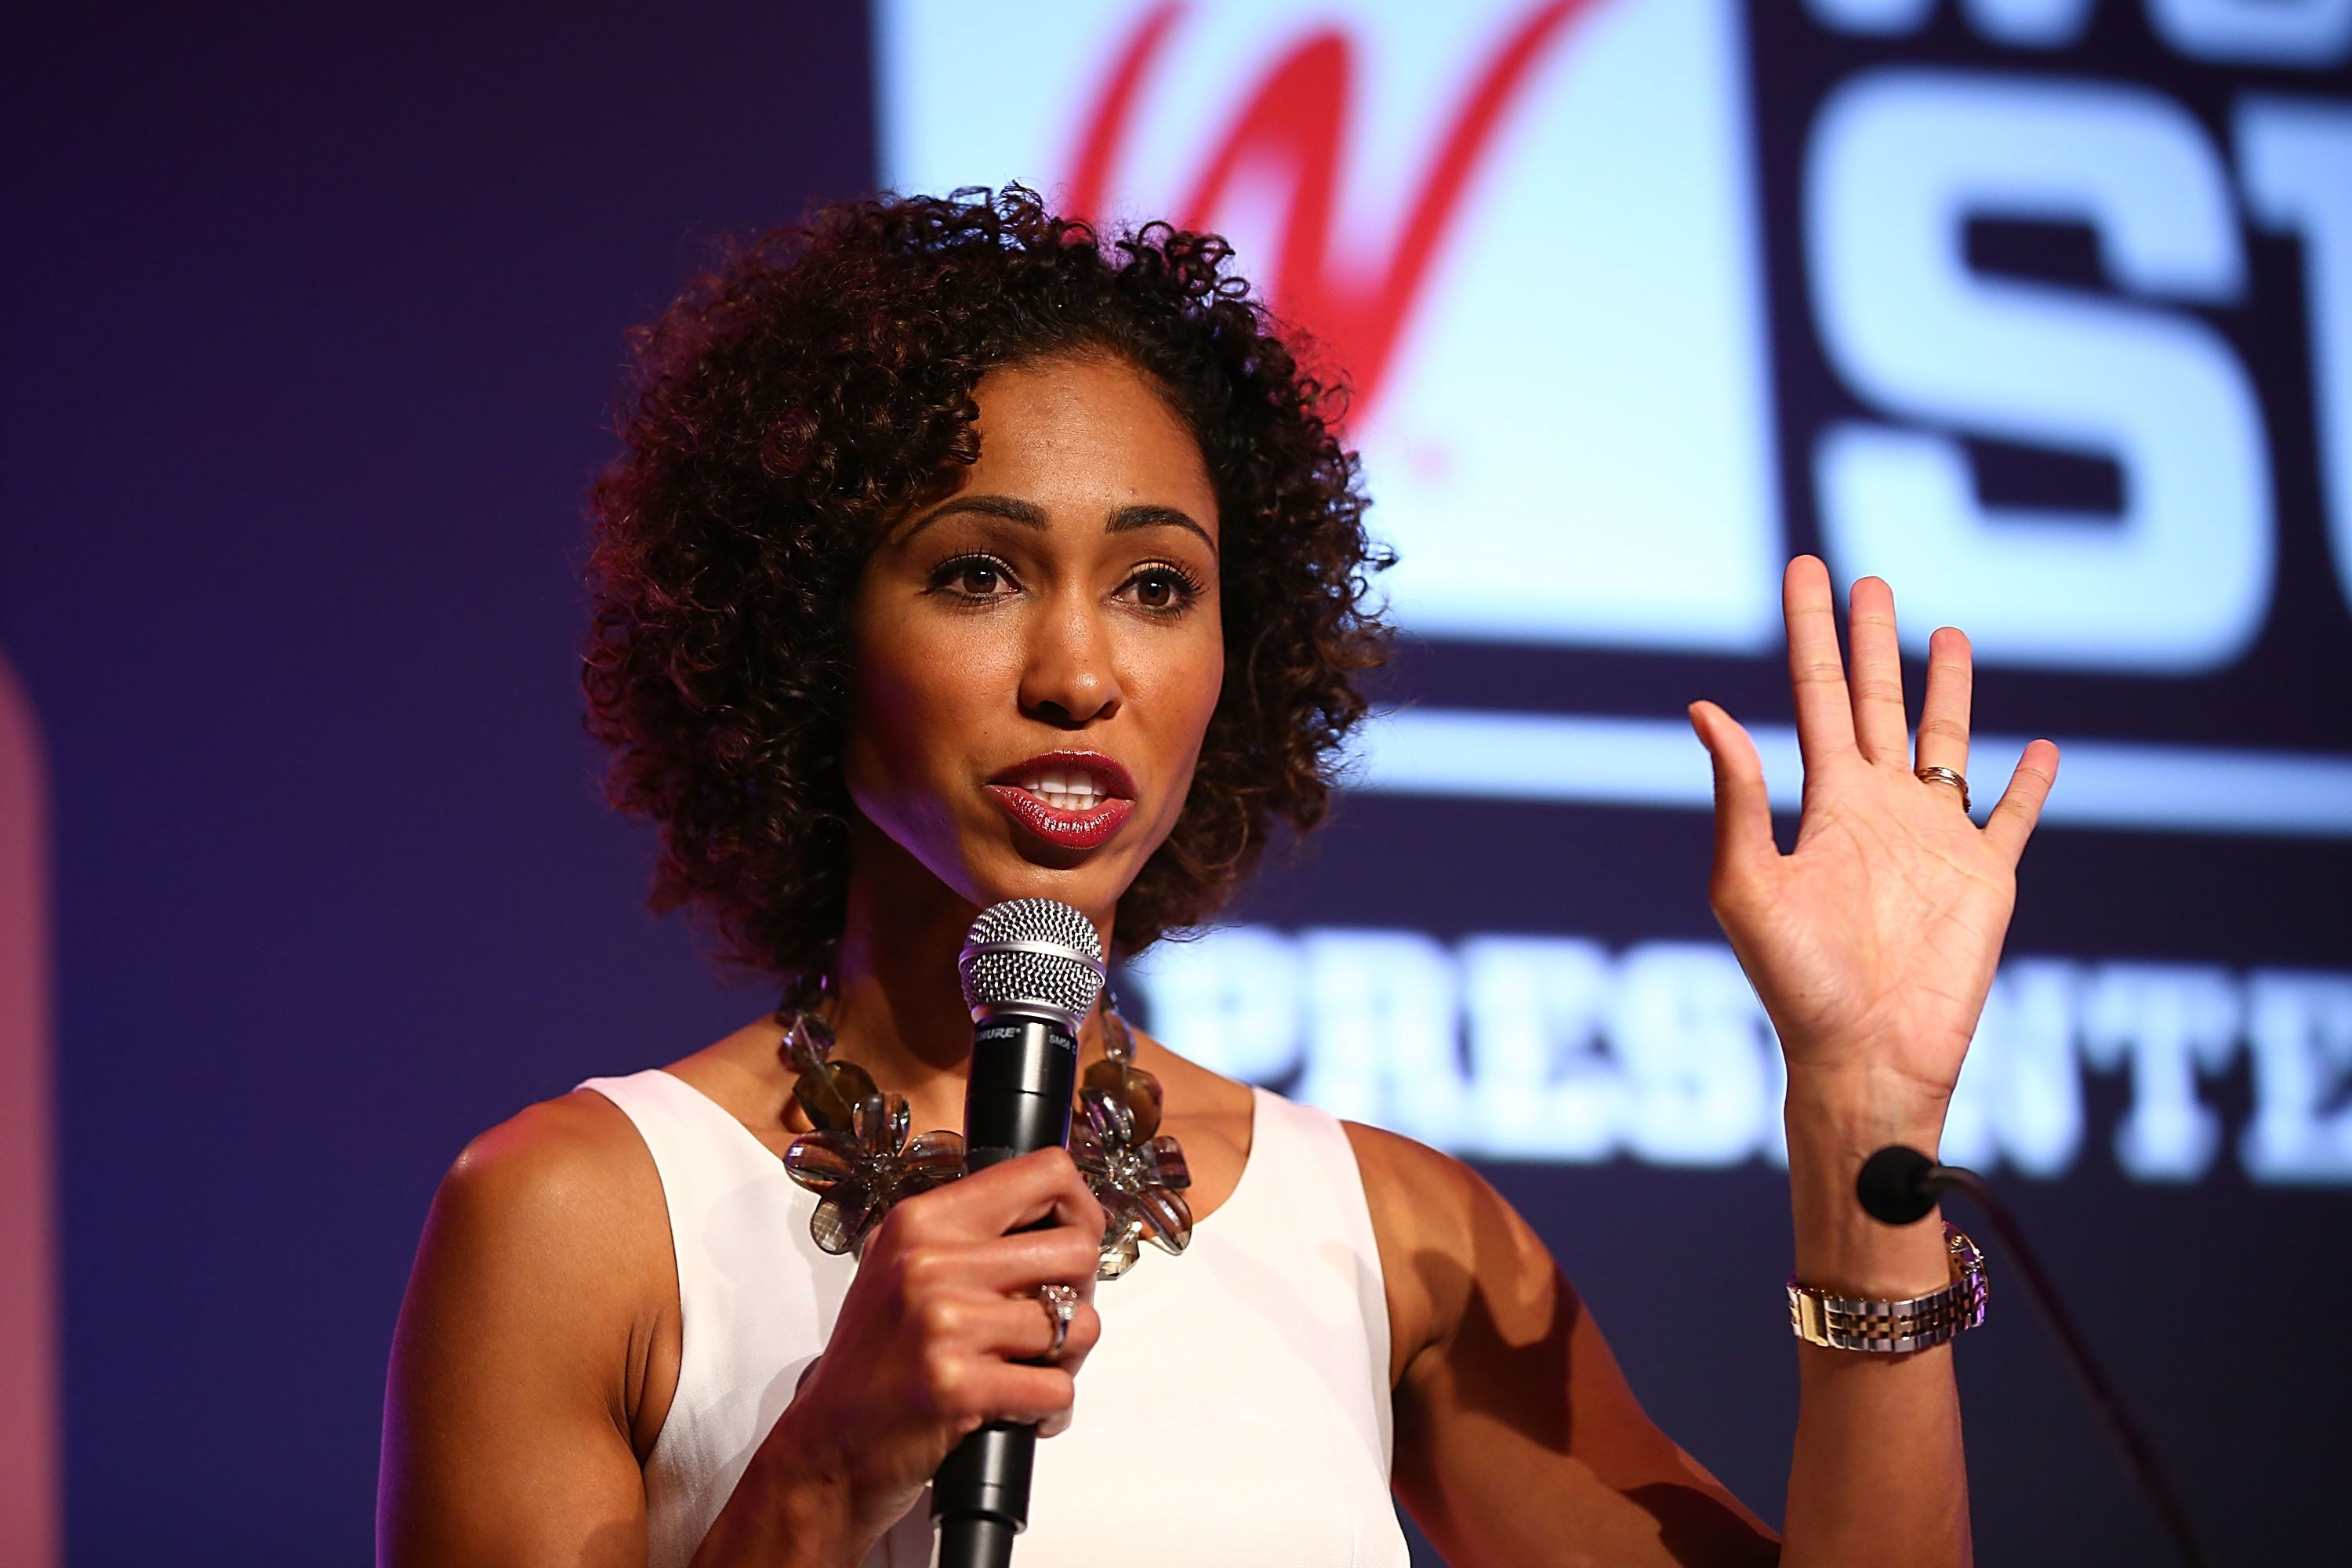 DANA POINT, CA - OCTOBER 09:  Sage Steele speaks onstage at the 2013 espnW: Women + Sports Summit at St. Regis Monarch Beach Resort on October 9, 2013 in Dana Point, California.  (Photo by Joe Scarnici/Getty Images)